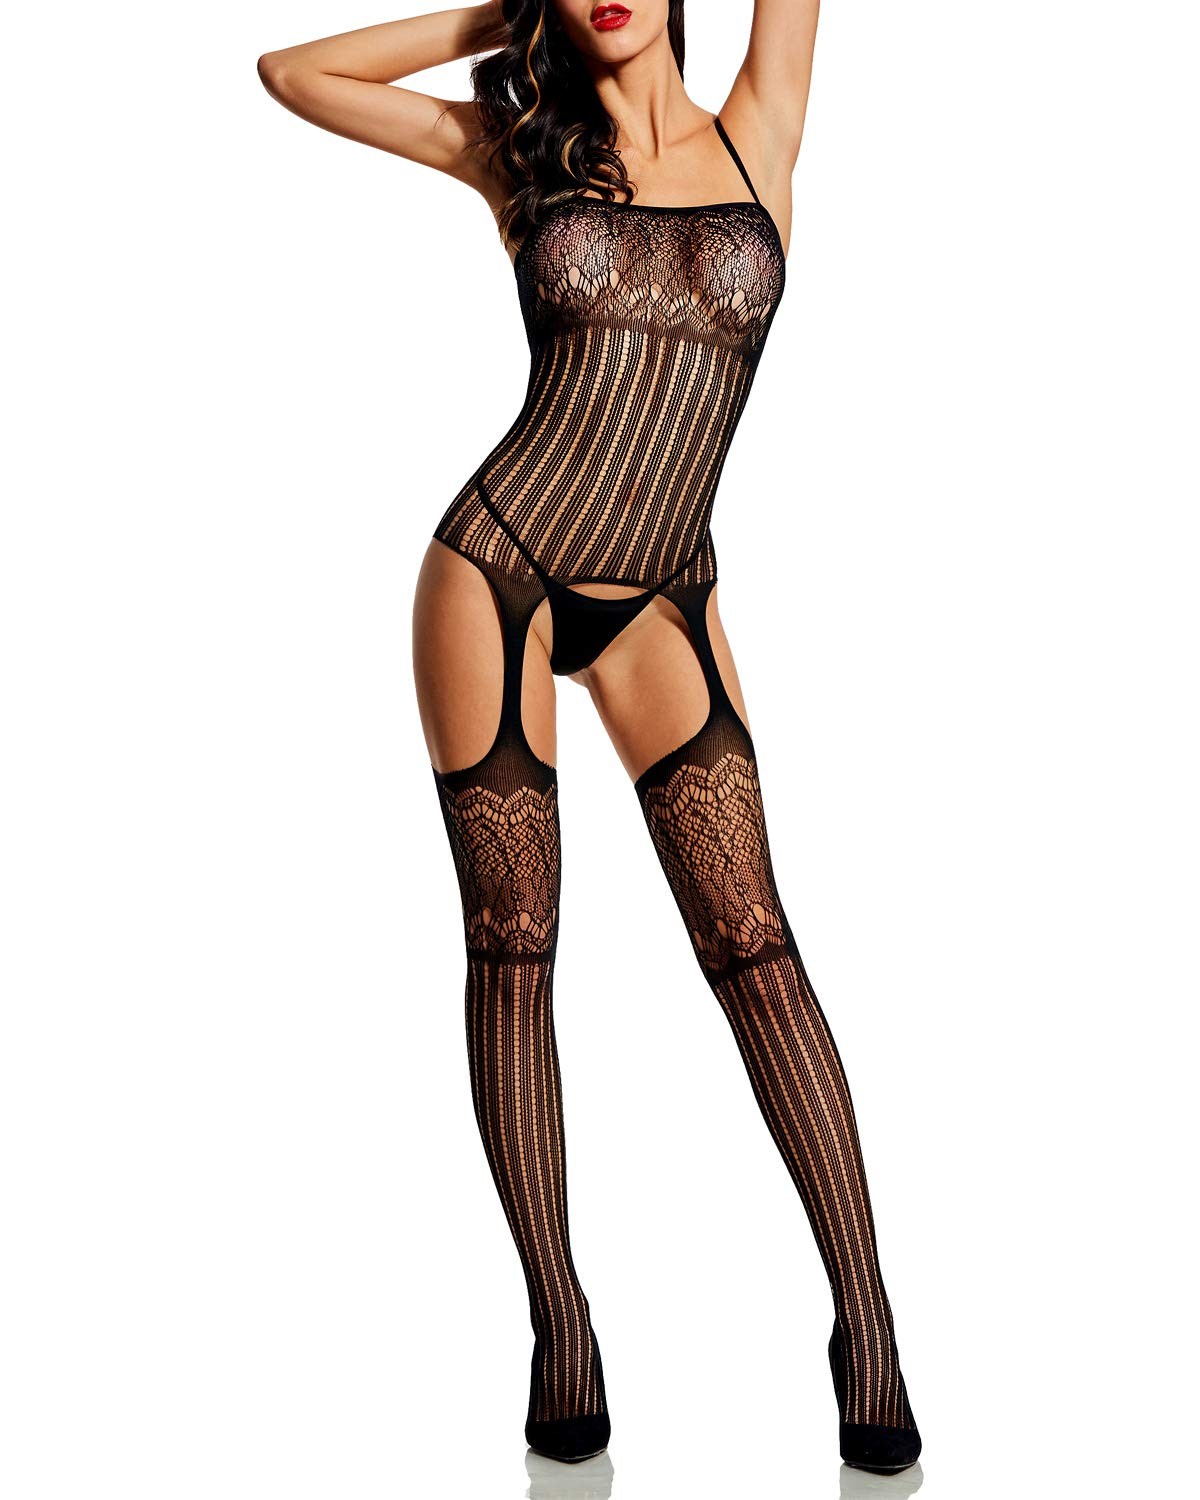 Alebear Women's Striped Lingerie Sexy Fishnet Bodystocking Crotchless Bodysuit Tights